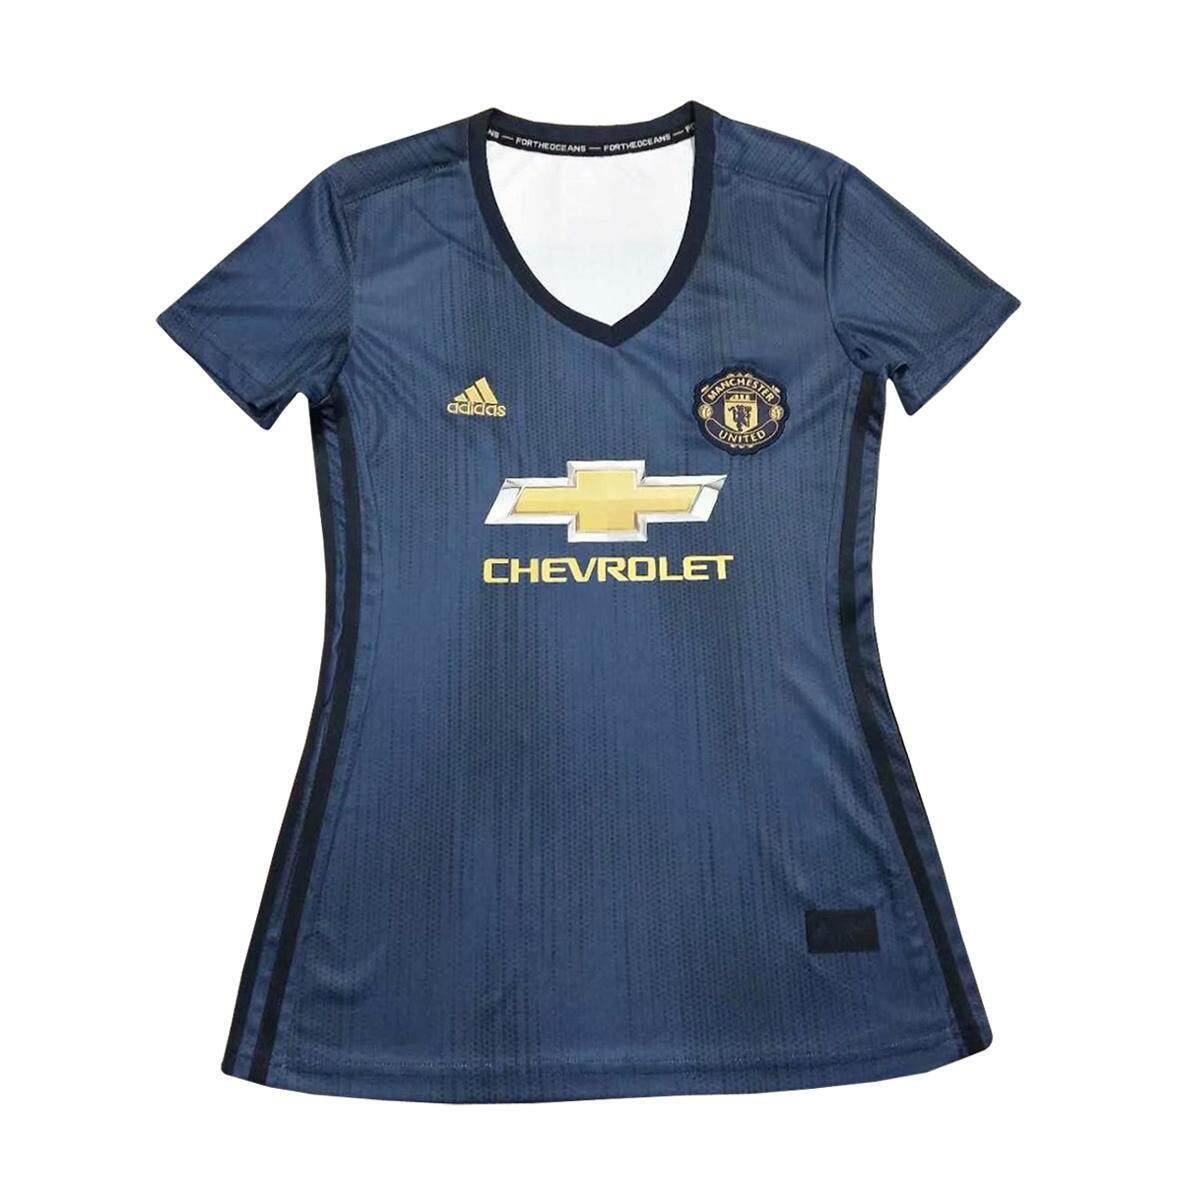 Manchester Utd Third 3rd 2018/19 Jersey For Women Epl By Pasca Niaga.